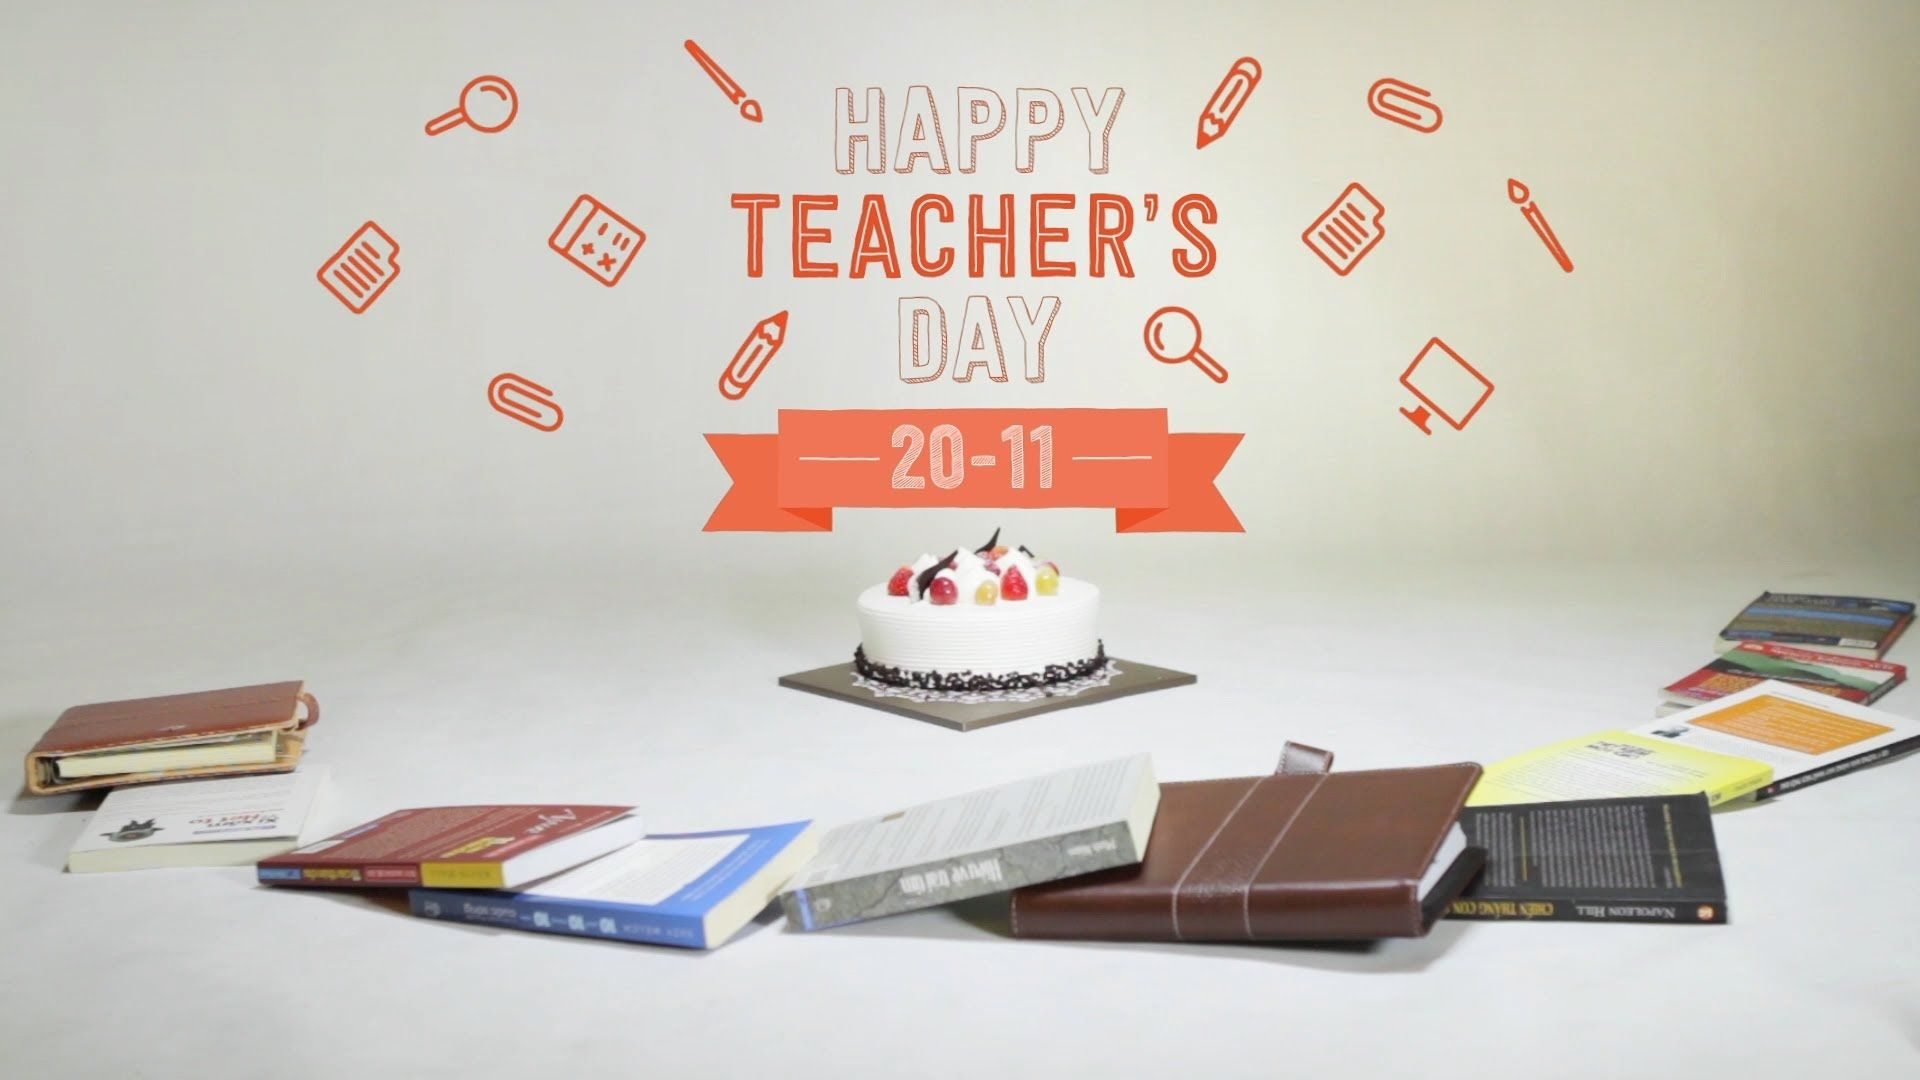 Eachers Day Is Celebrated In Many Countries To Honor Teachers For Their Contributions The Date Of The Holiday Varies From Country To Country For Example Tea